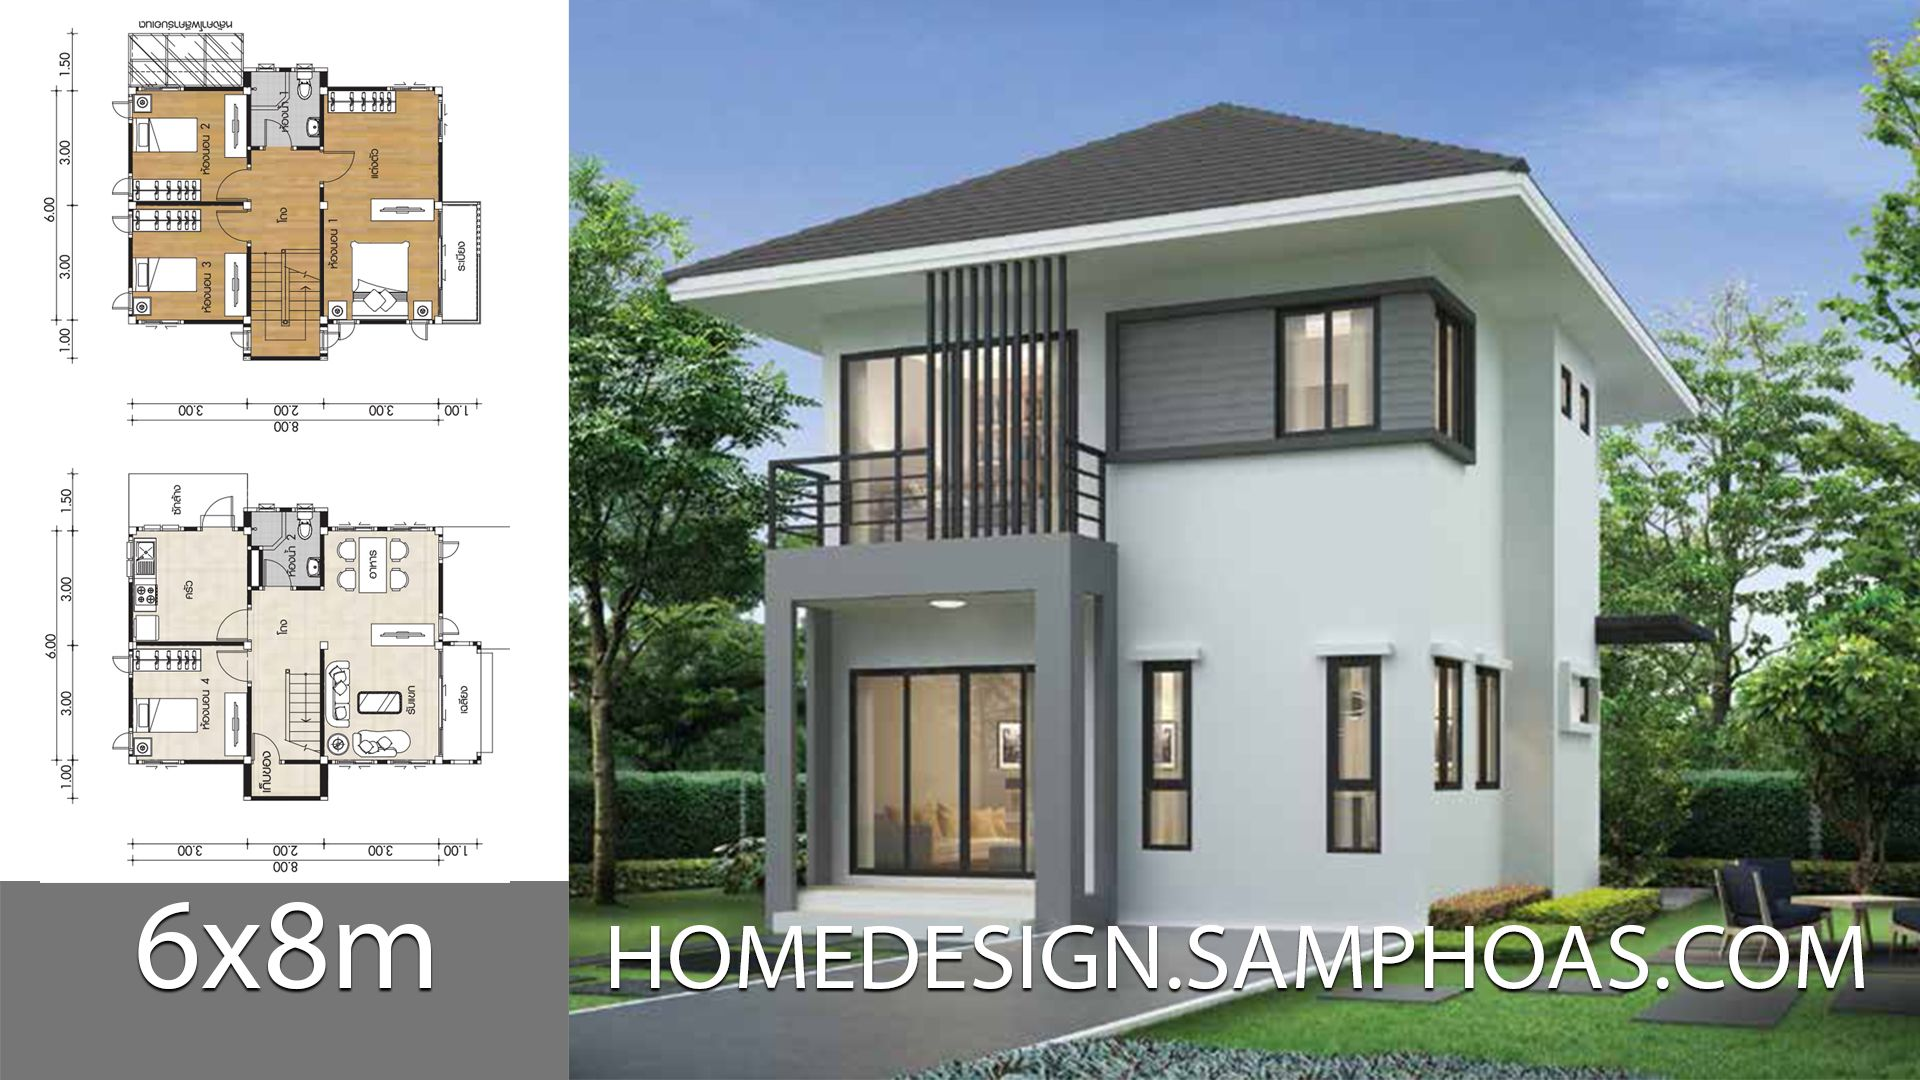 Small House Plans 7x8m With 4 Bedrooms House Plan Map Small House Plans Affordable House Plans House Plans